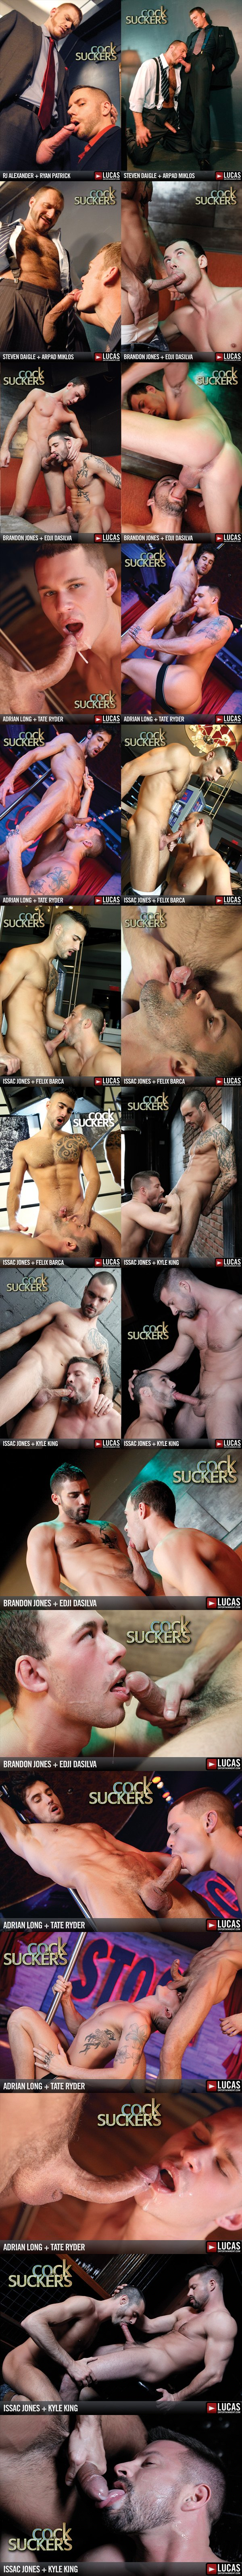 Hottes Gay Porn Stars' oral action in Cock Suckers at Lucasentertainment 01